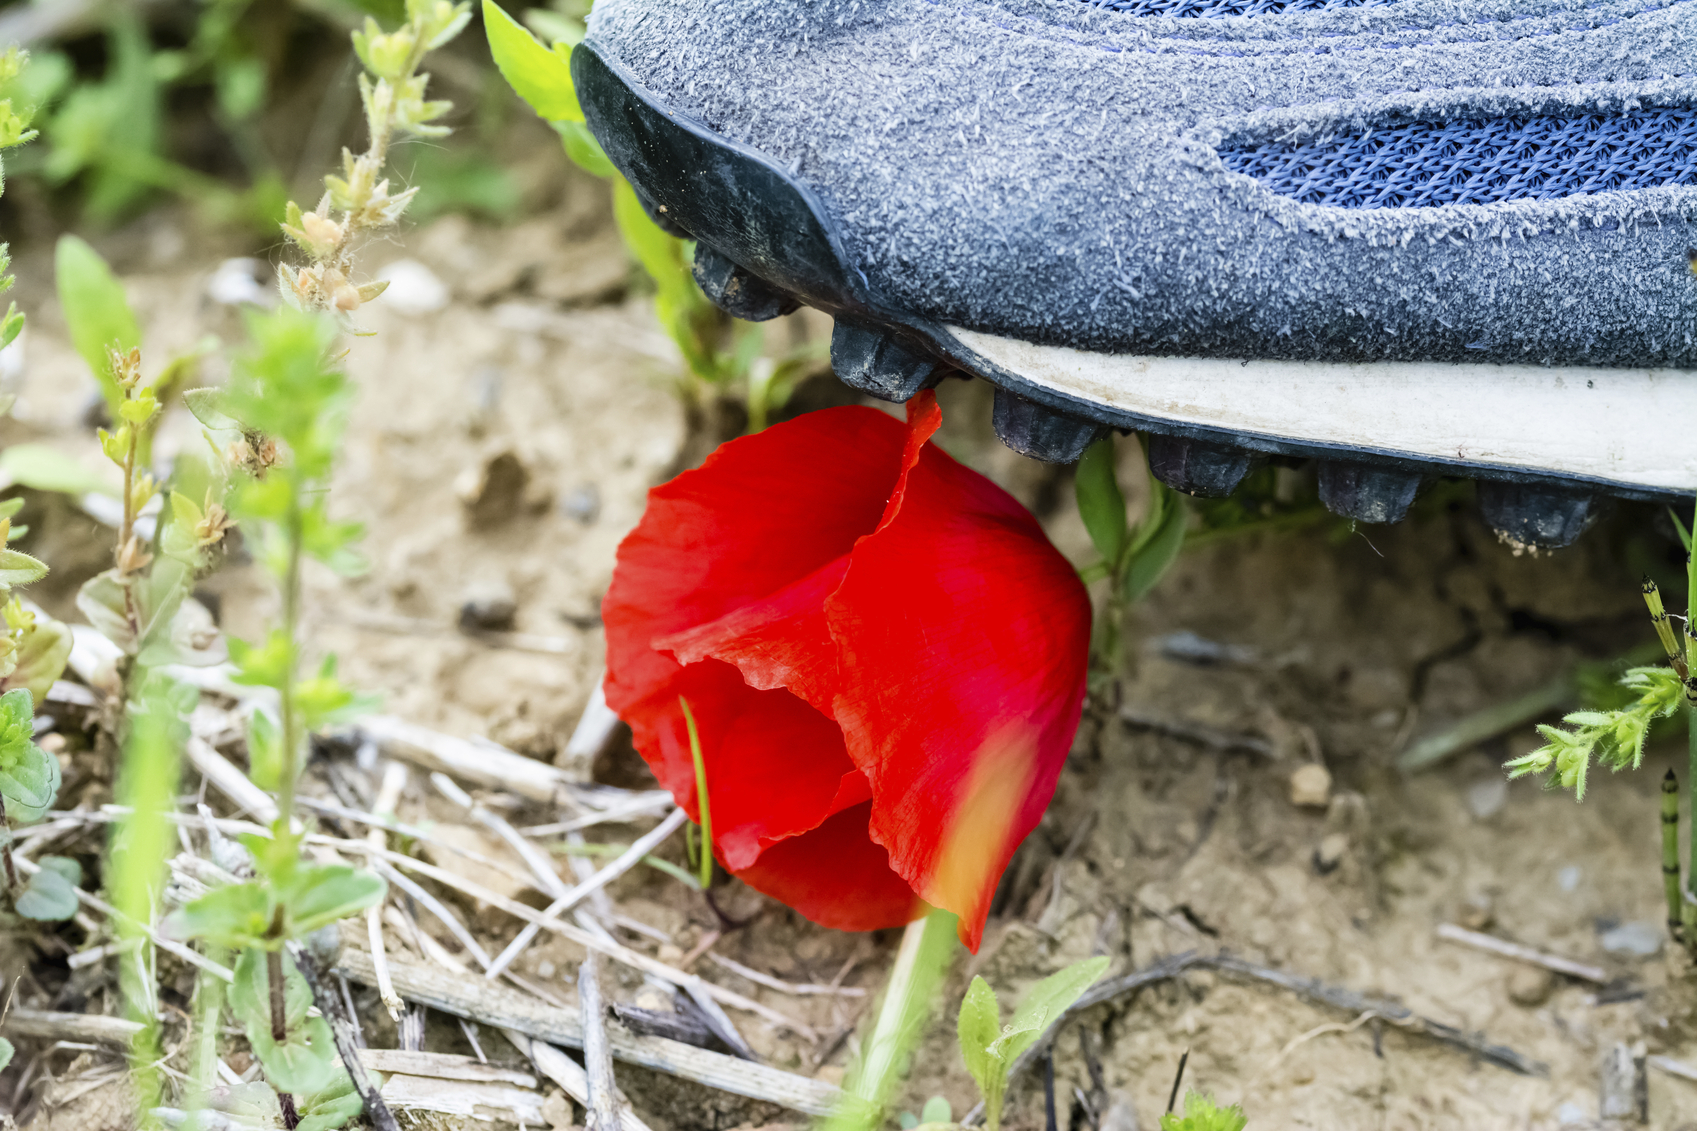 Shoe of a man who tramples a poppy flower